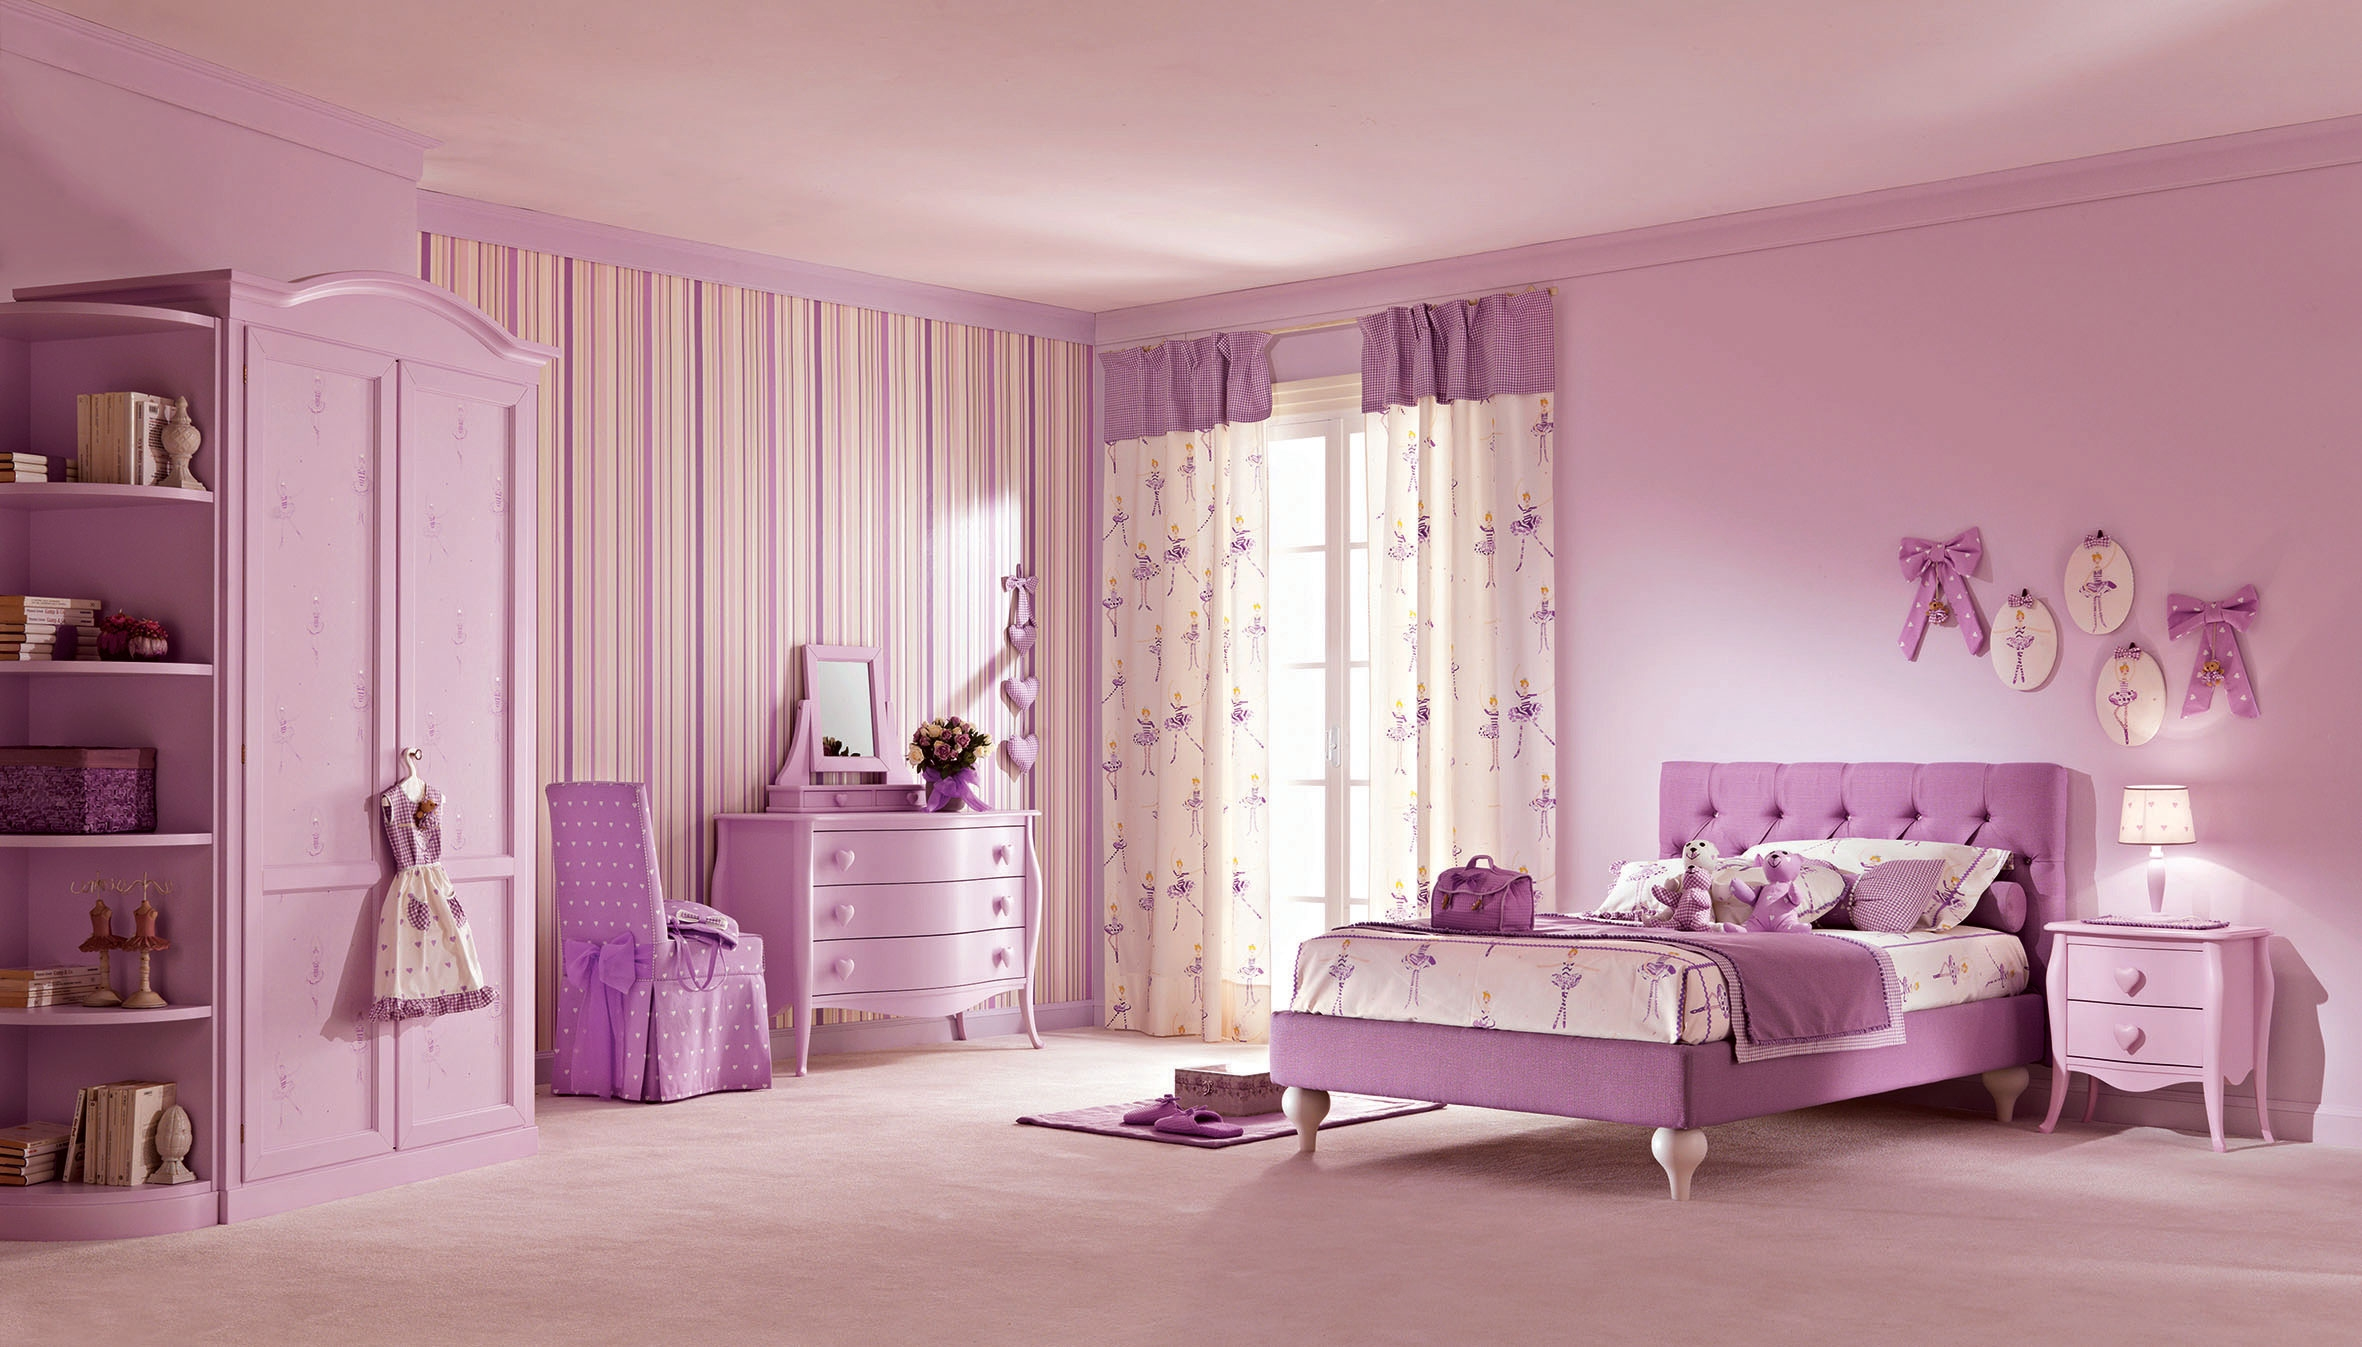 emejing chambre fille princesse images design trends. Black Bedroom Furniture Sets. Home Design Ideas